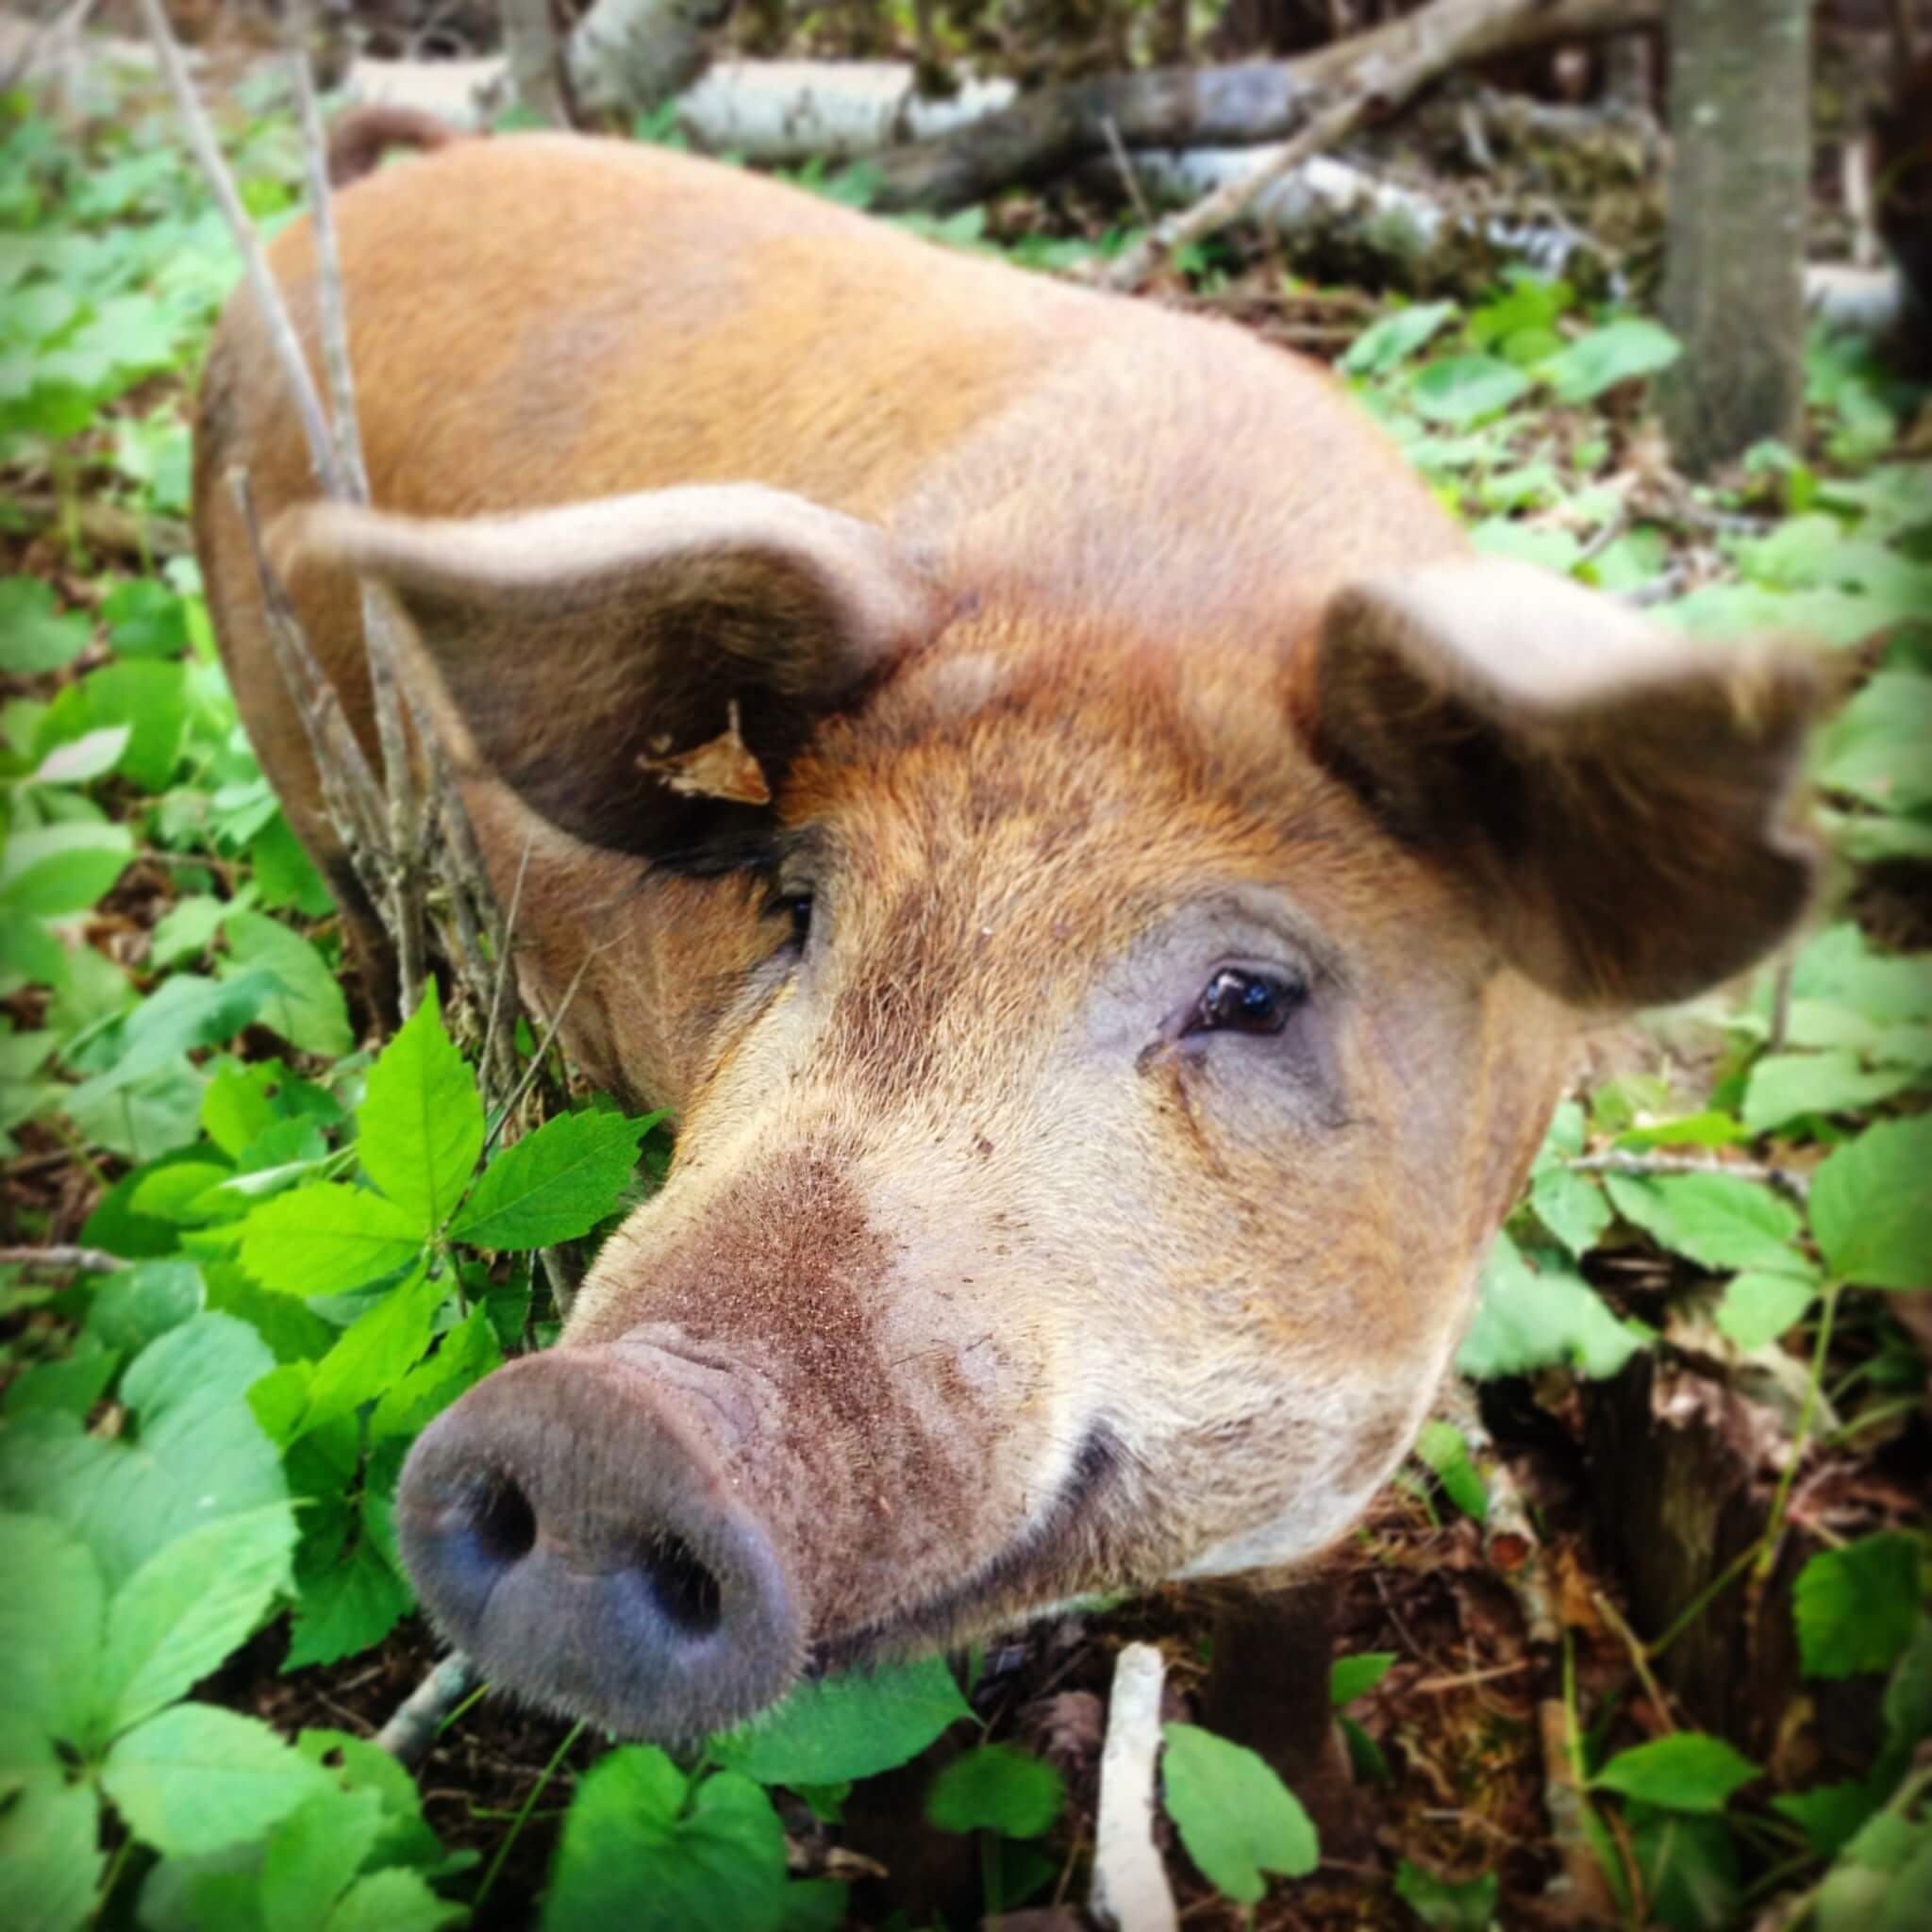 Brown pig standing in the grass smiling